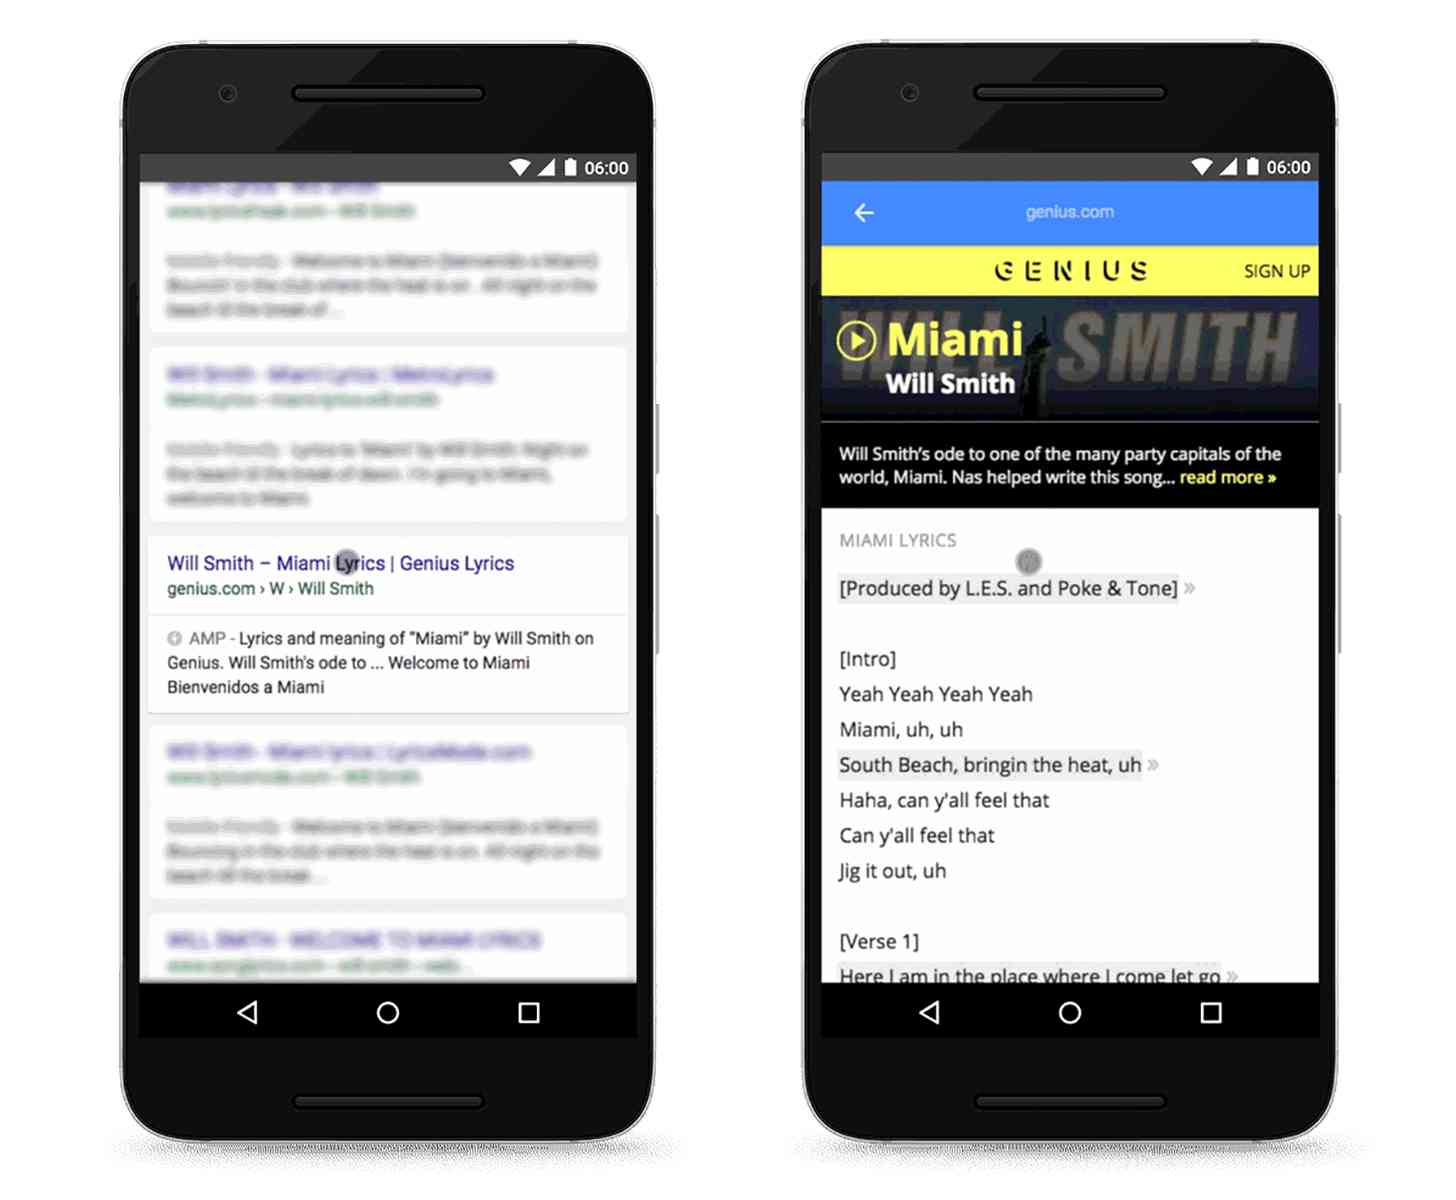 Google AMP mobile search results